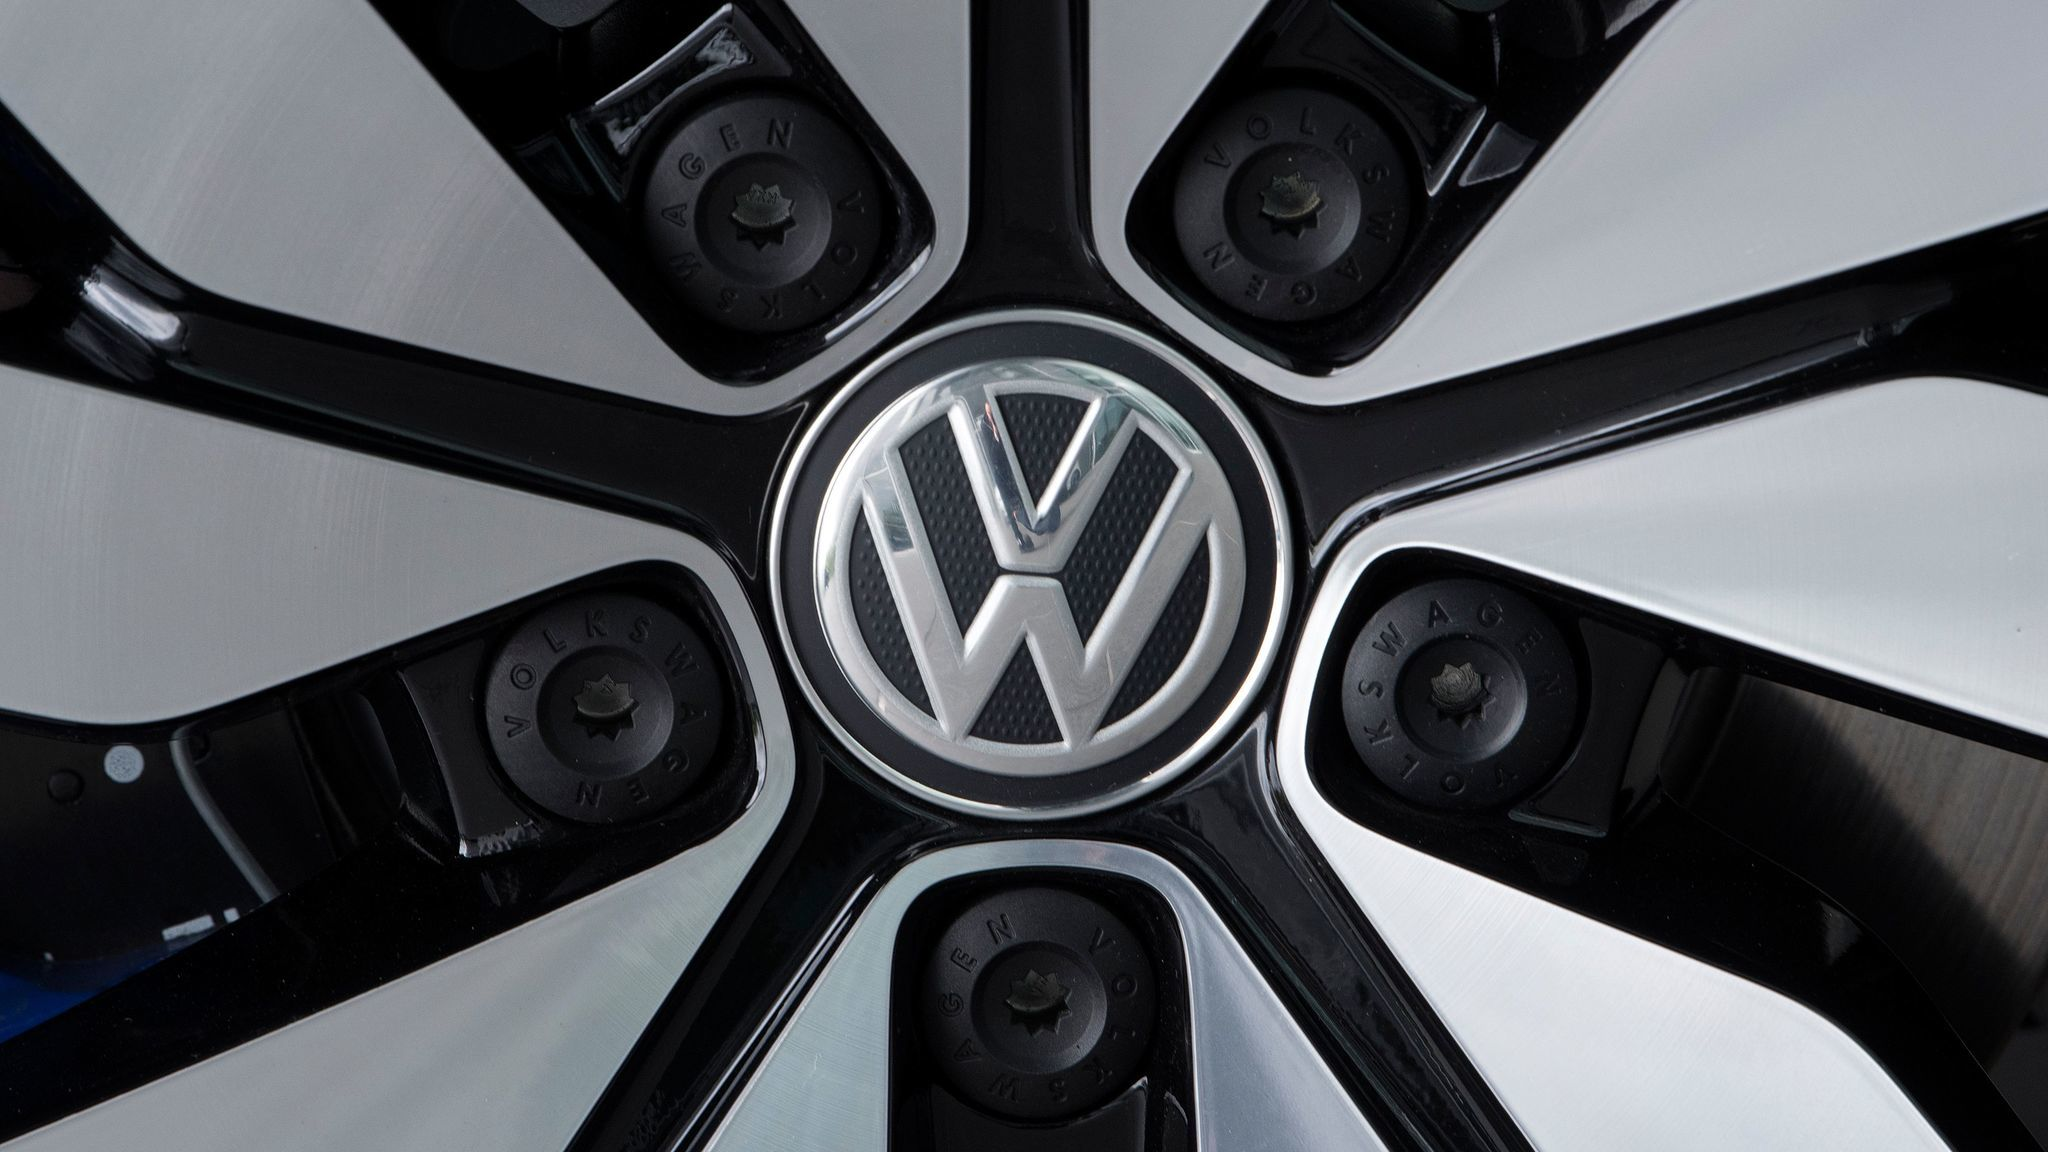 Volkswagen executive pleads guilty in emissions scandal